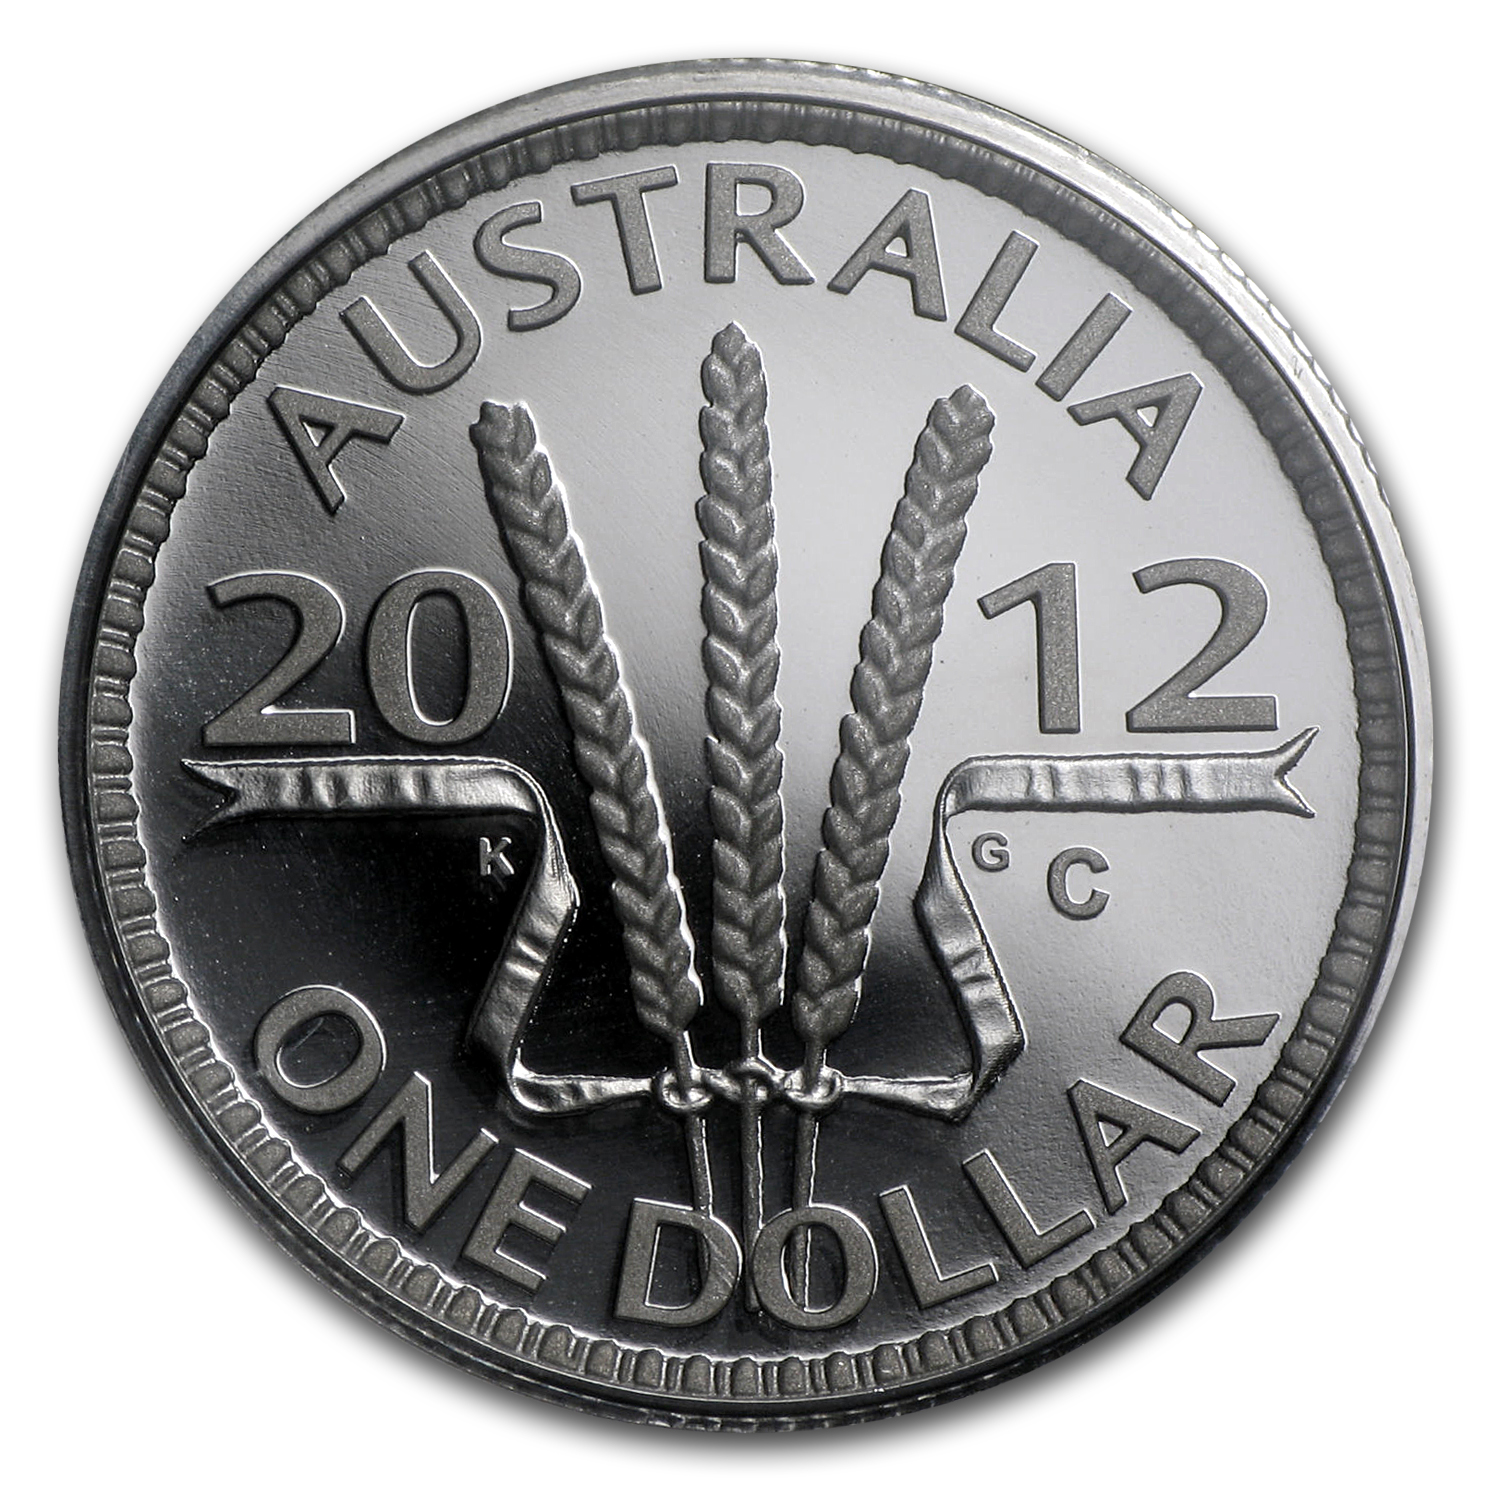 Royal Australian Mint 2012 Silver Proof - Wheat Sheaf Dollar